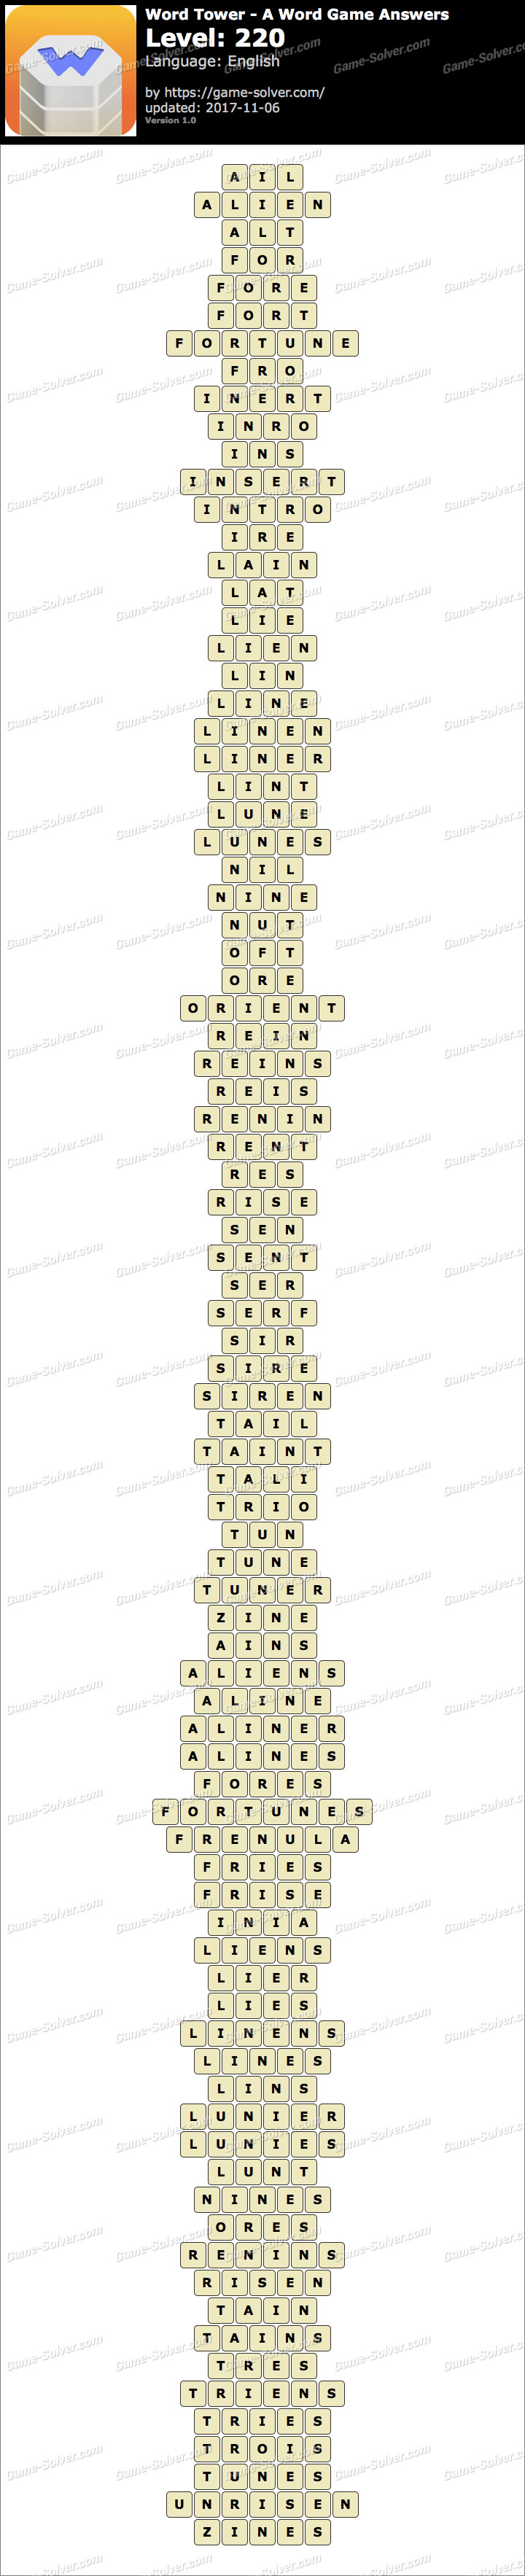 Word Tower Level 220 Answers